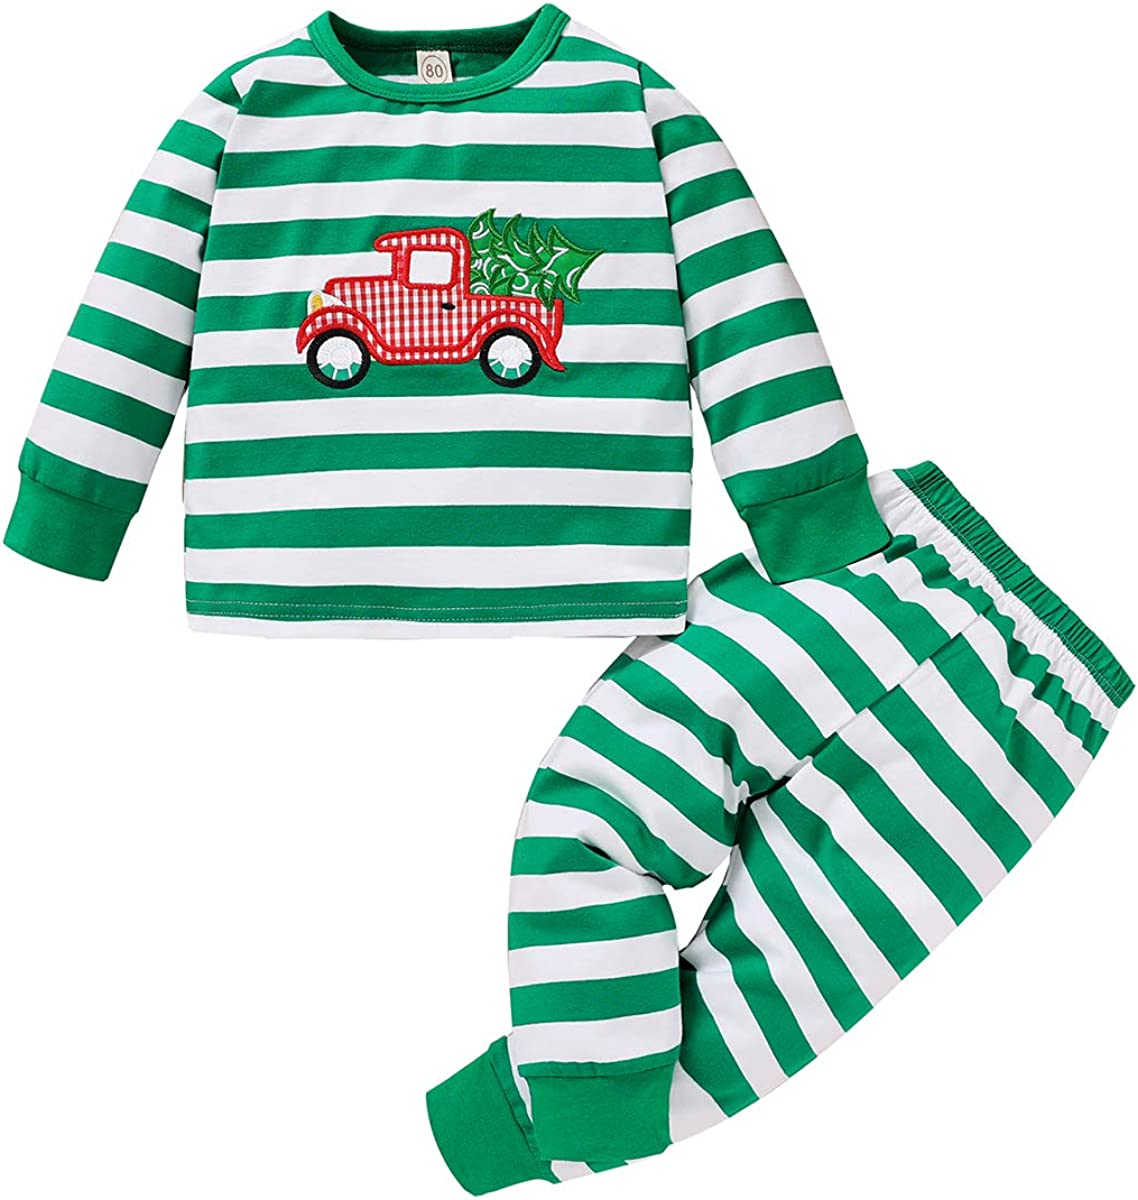 Toddler Baby Boys Clothes Stripe Christmas Outfit Set